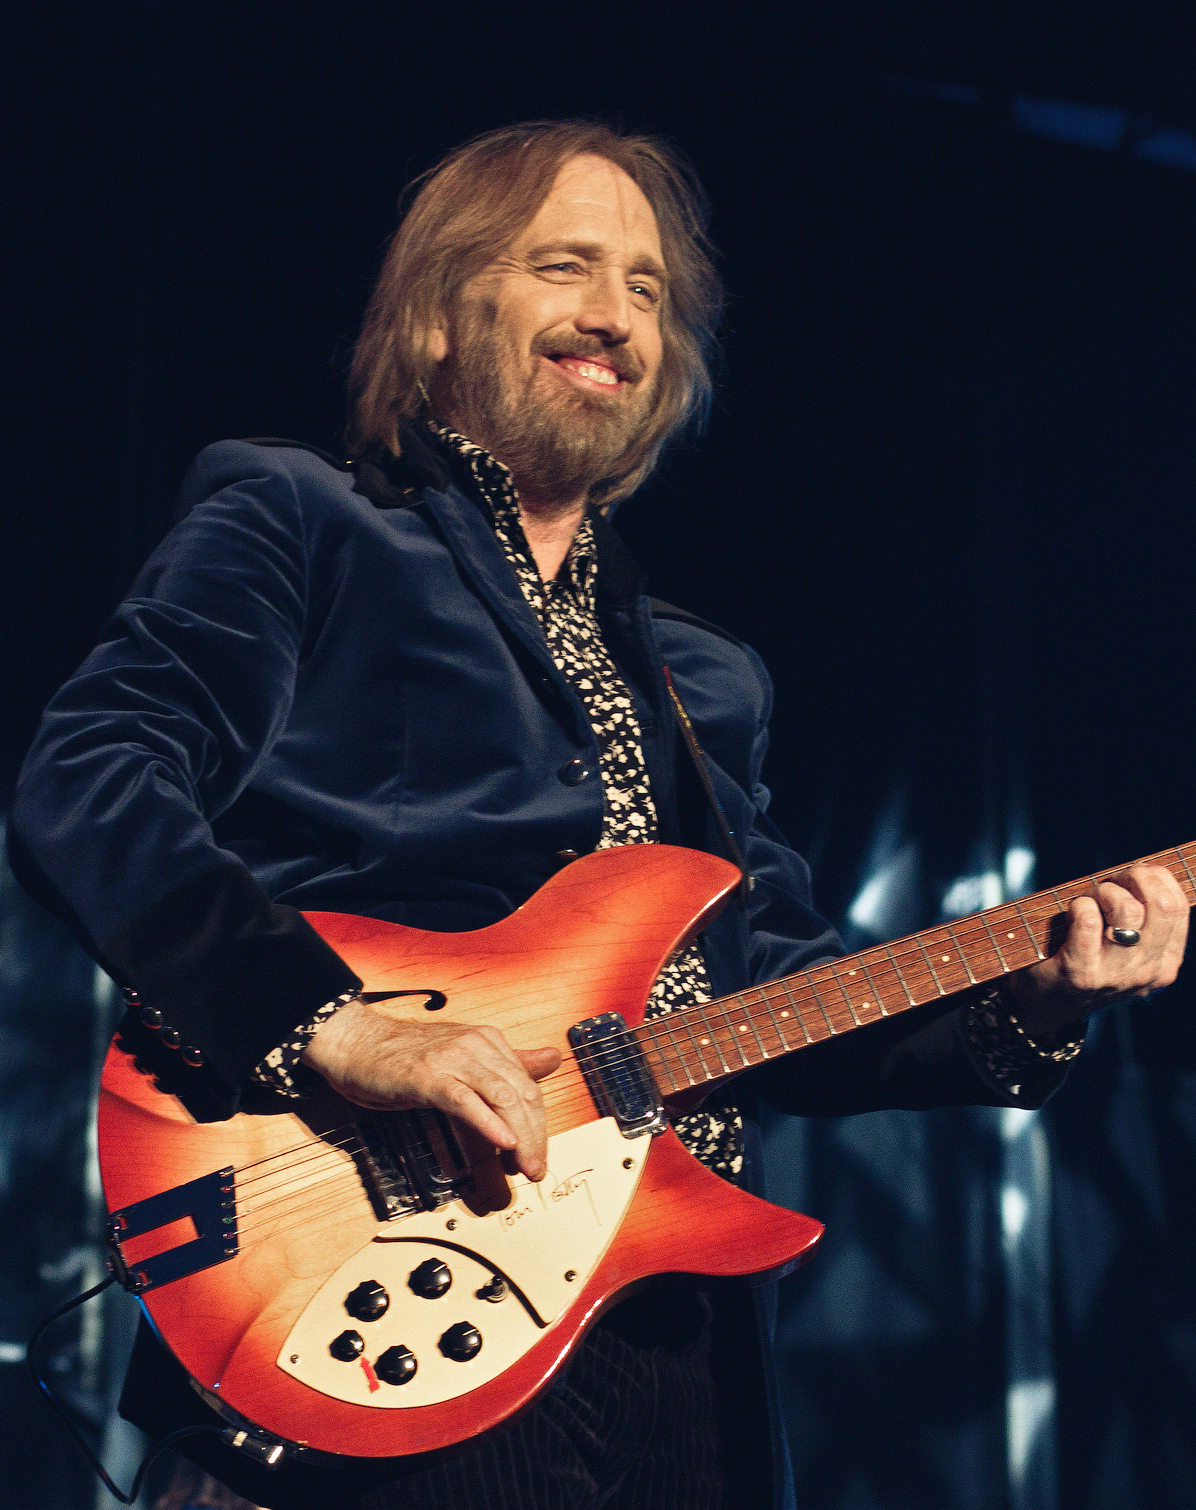 Tom_Petty_Live_in_Horsens_(cropped2)